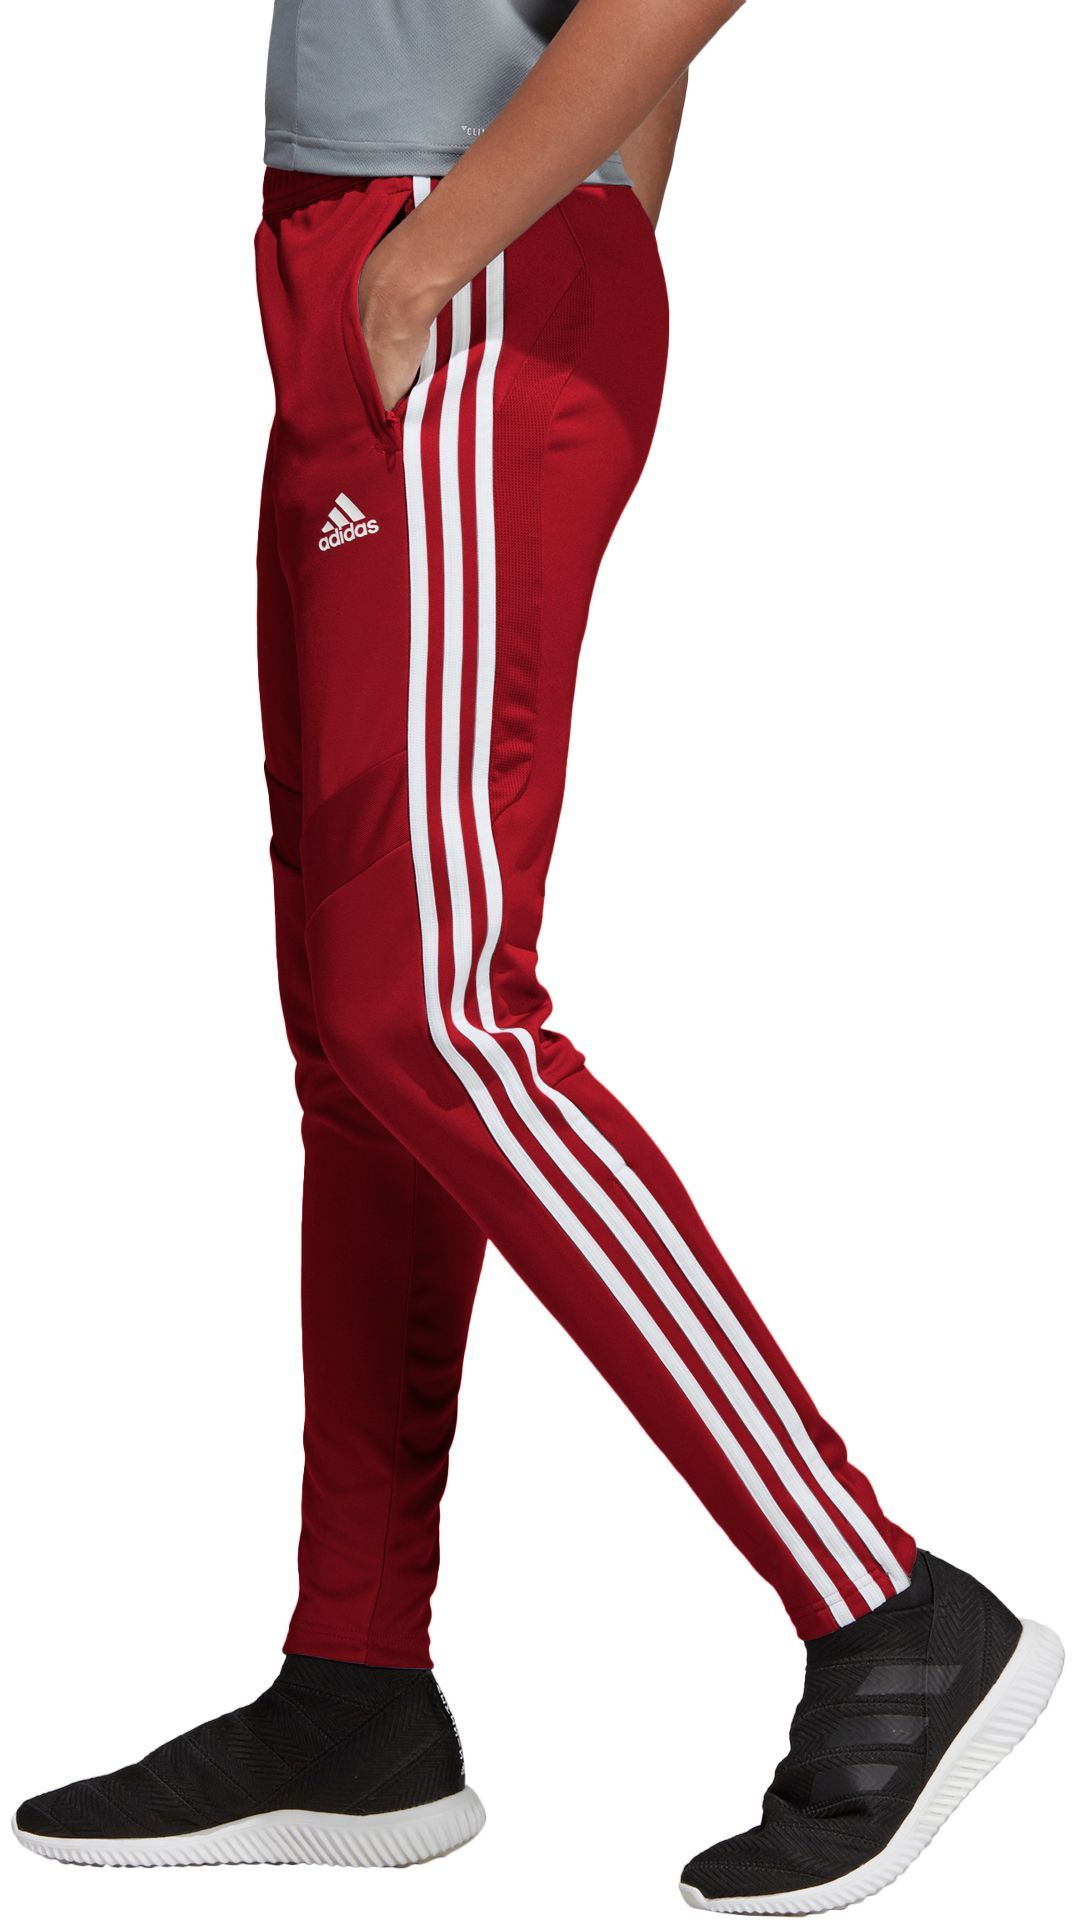 8b3dbf8e3b4f9 adidas Women's Tiro 19 Training Pants in 2019 | Products | Adidas ...